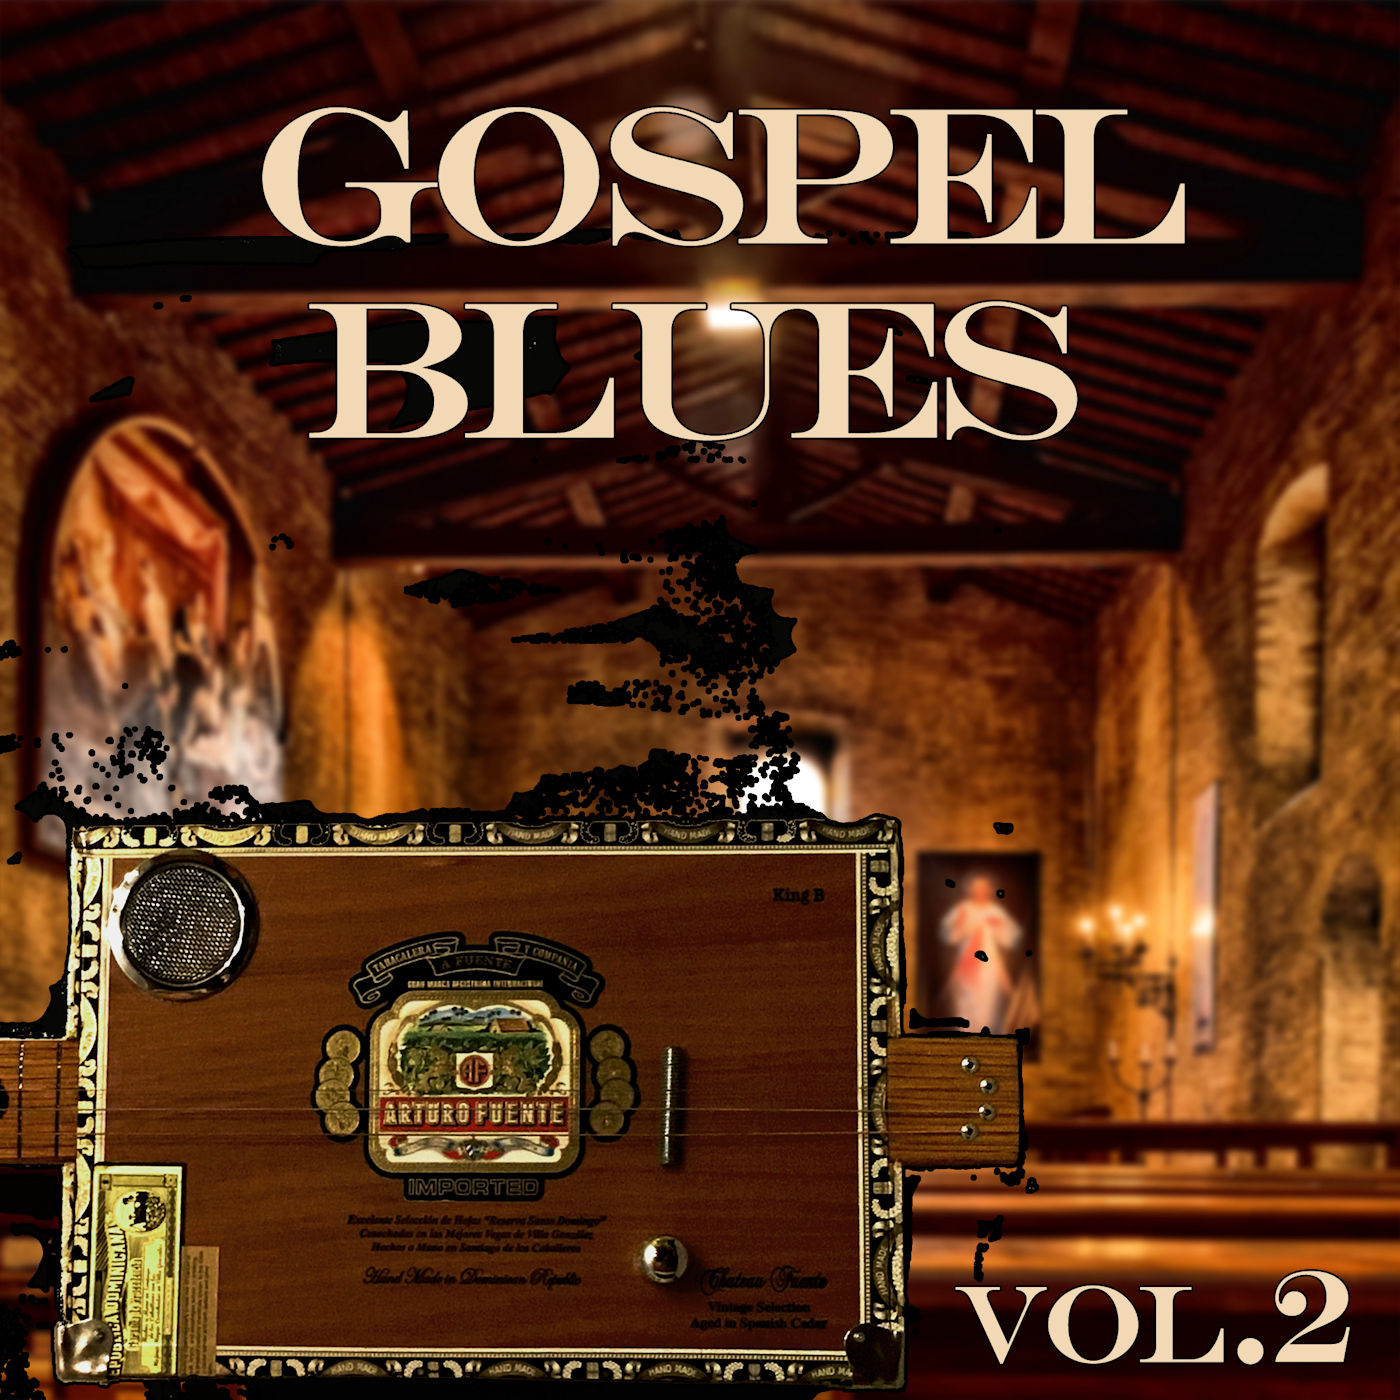 Gospel Blues Vol. 2 - photo#43